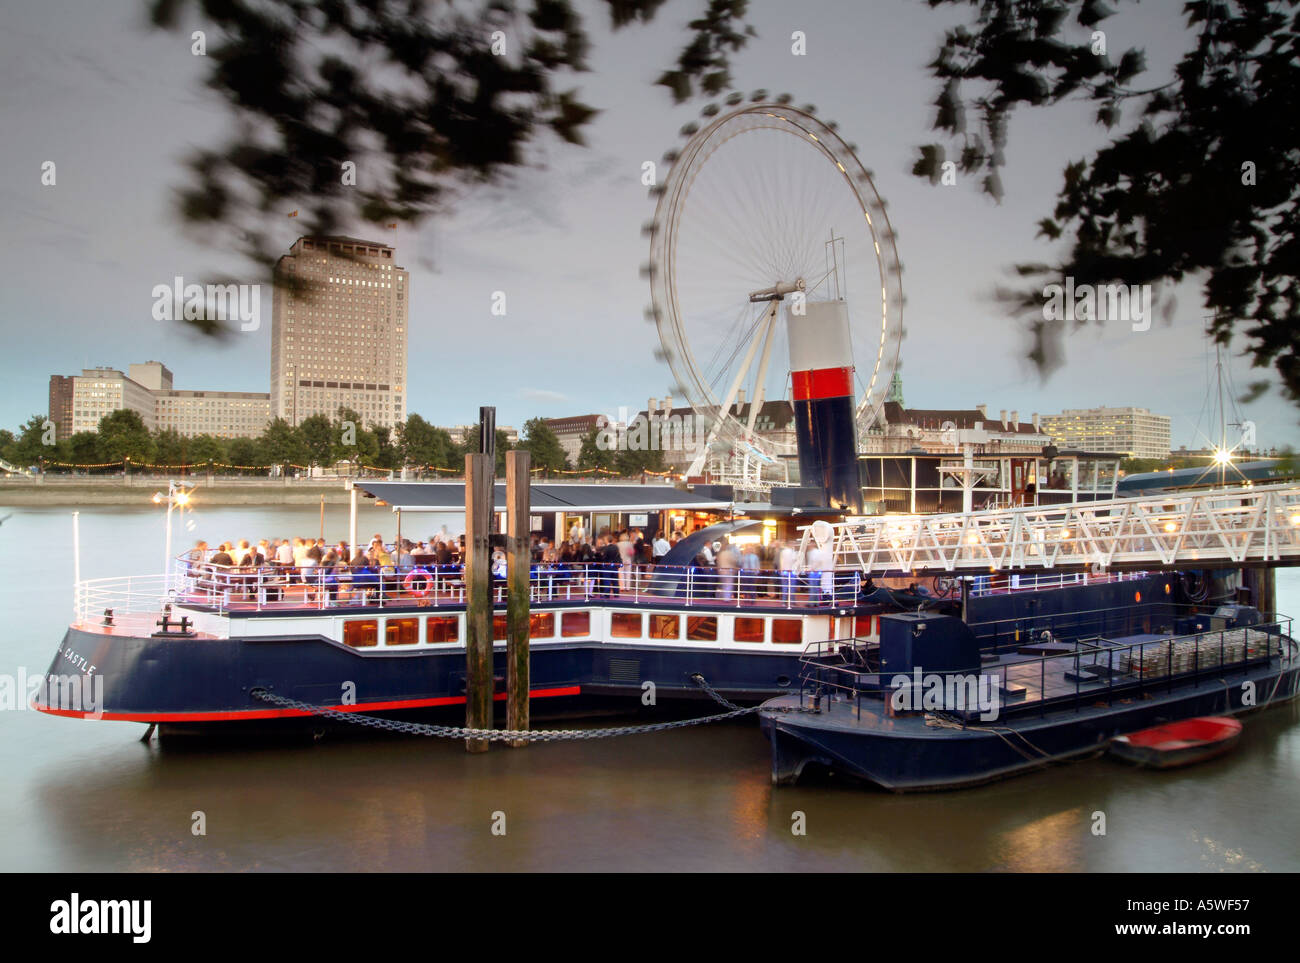 The Tattershall Castle pub-boat moored on the Thames embankment in London. - Stock Image